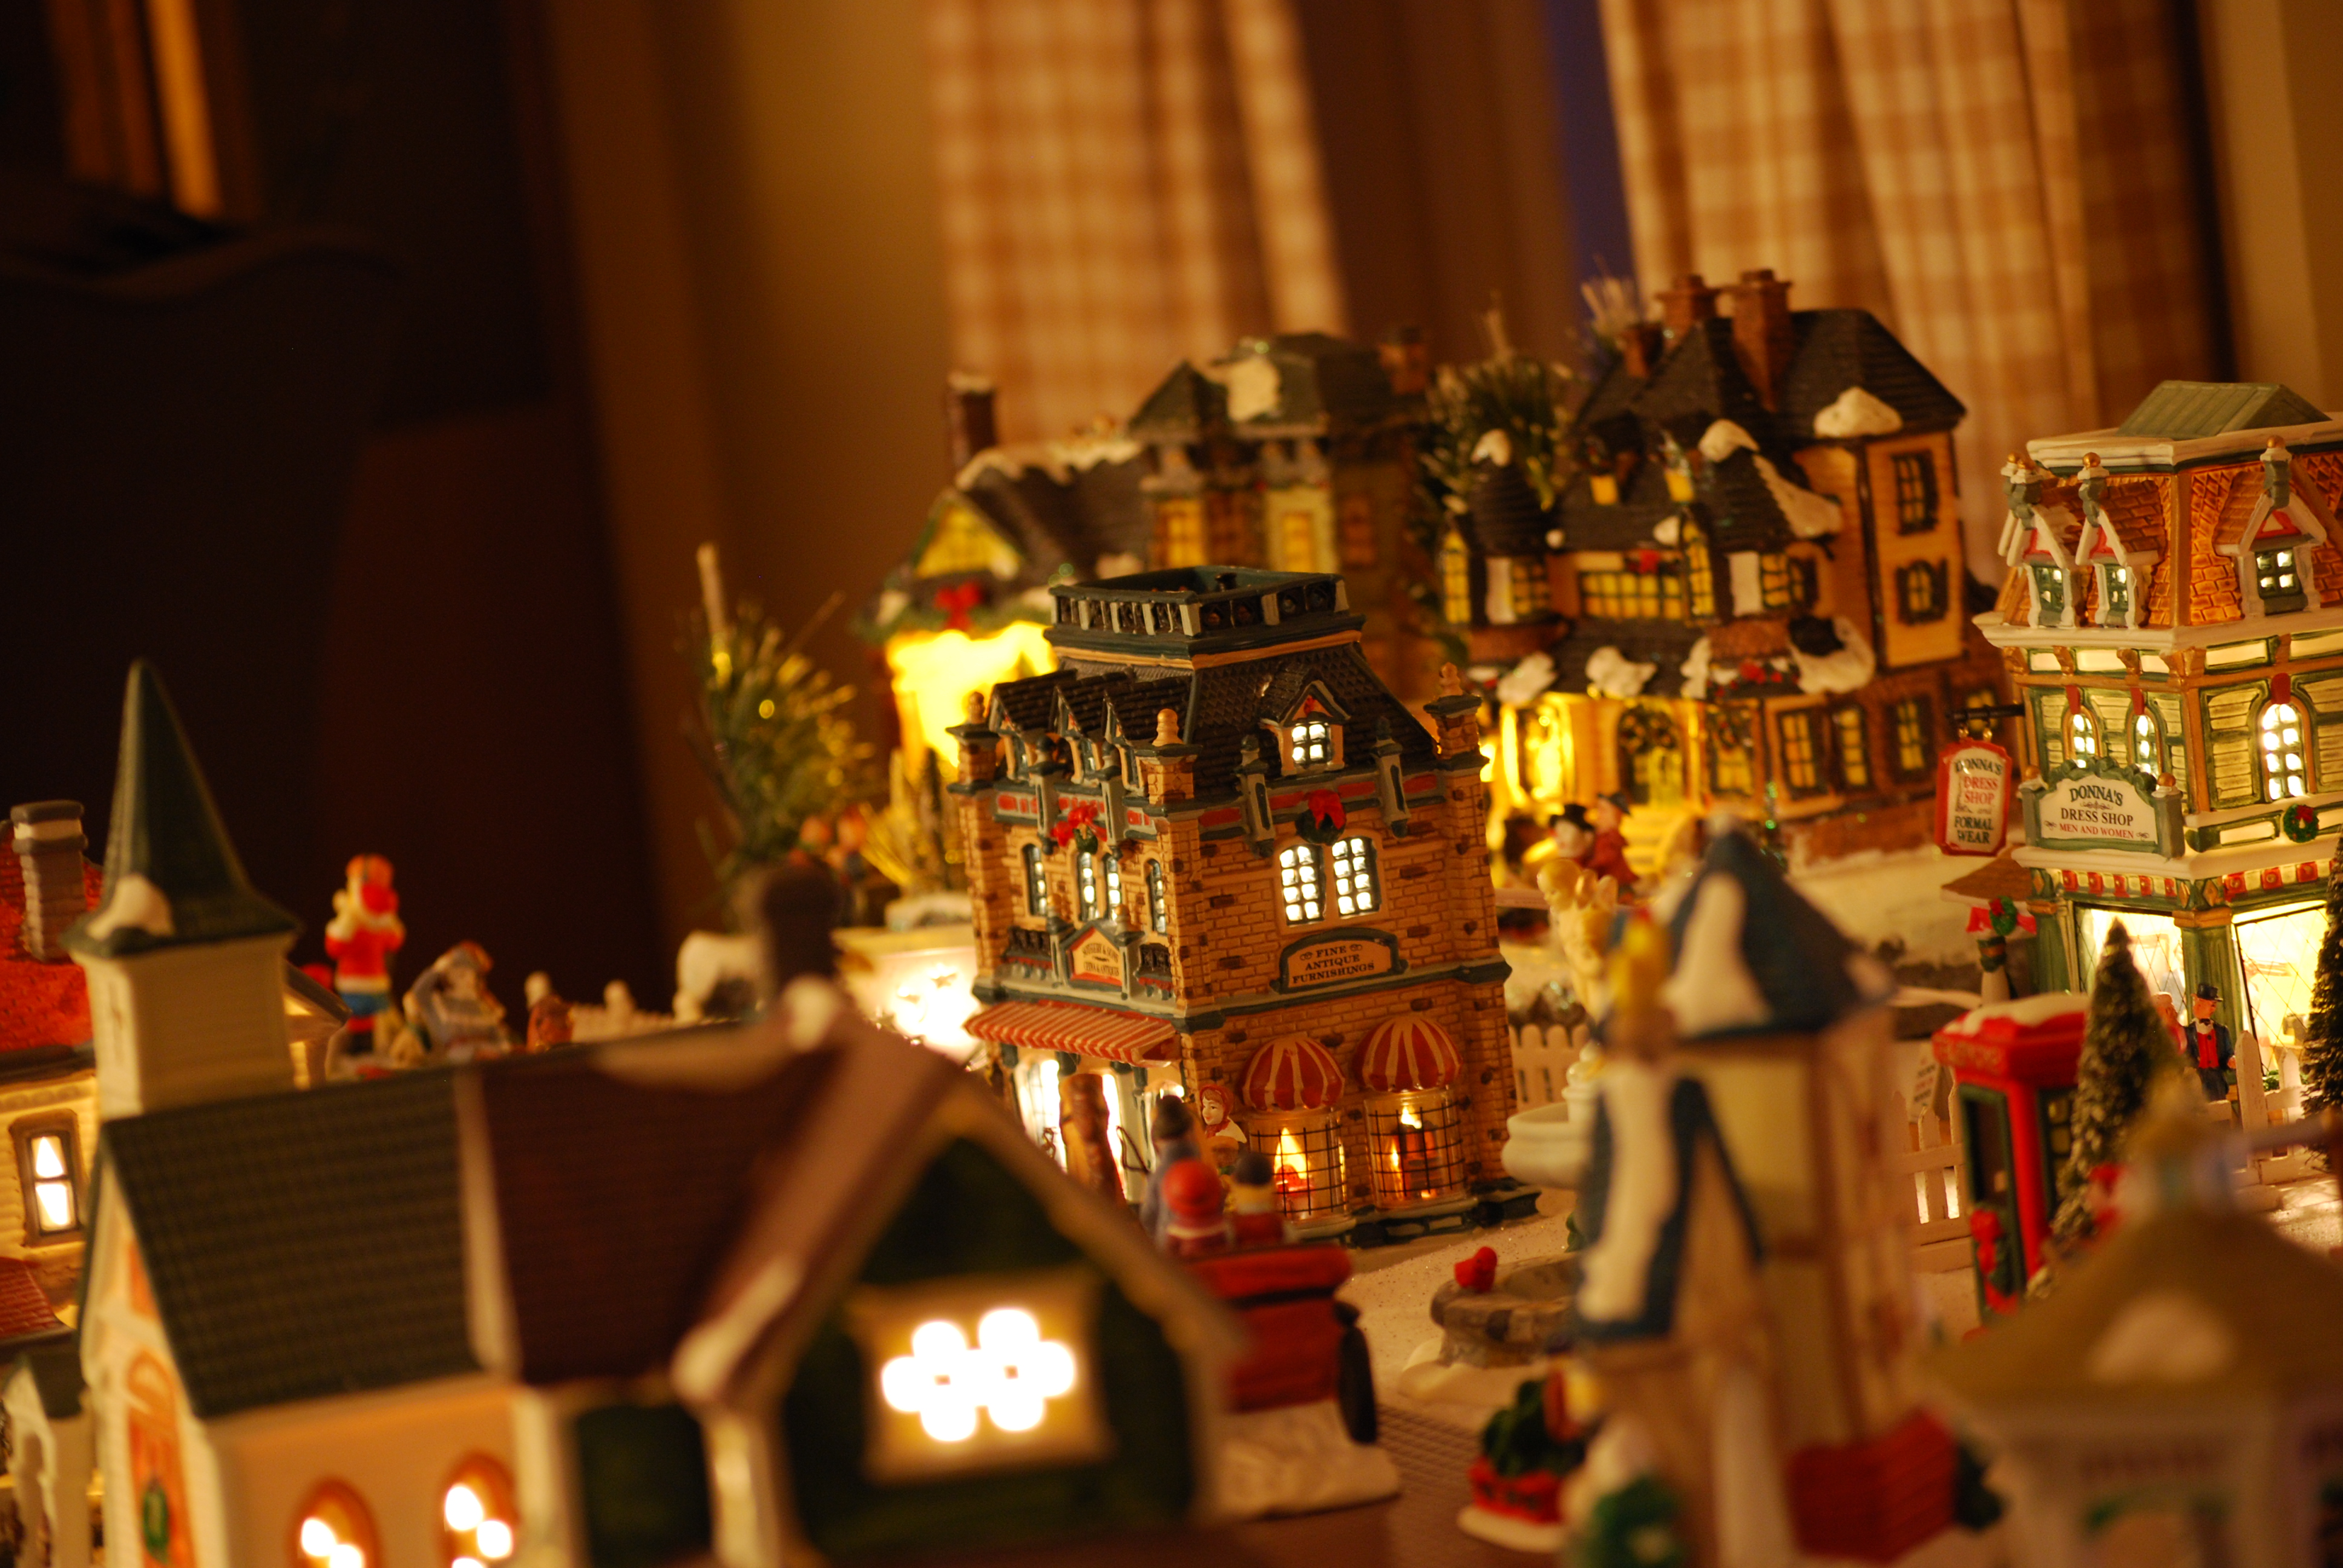 File:Decorative Christmas village 2.JPG - Wikimedia Commons